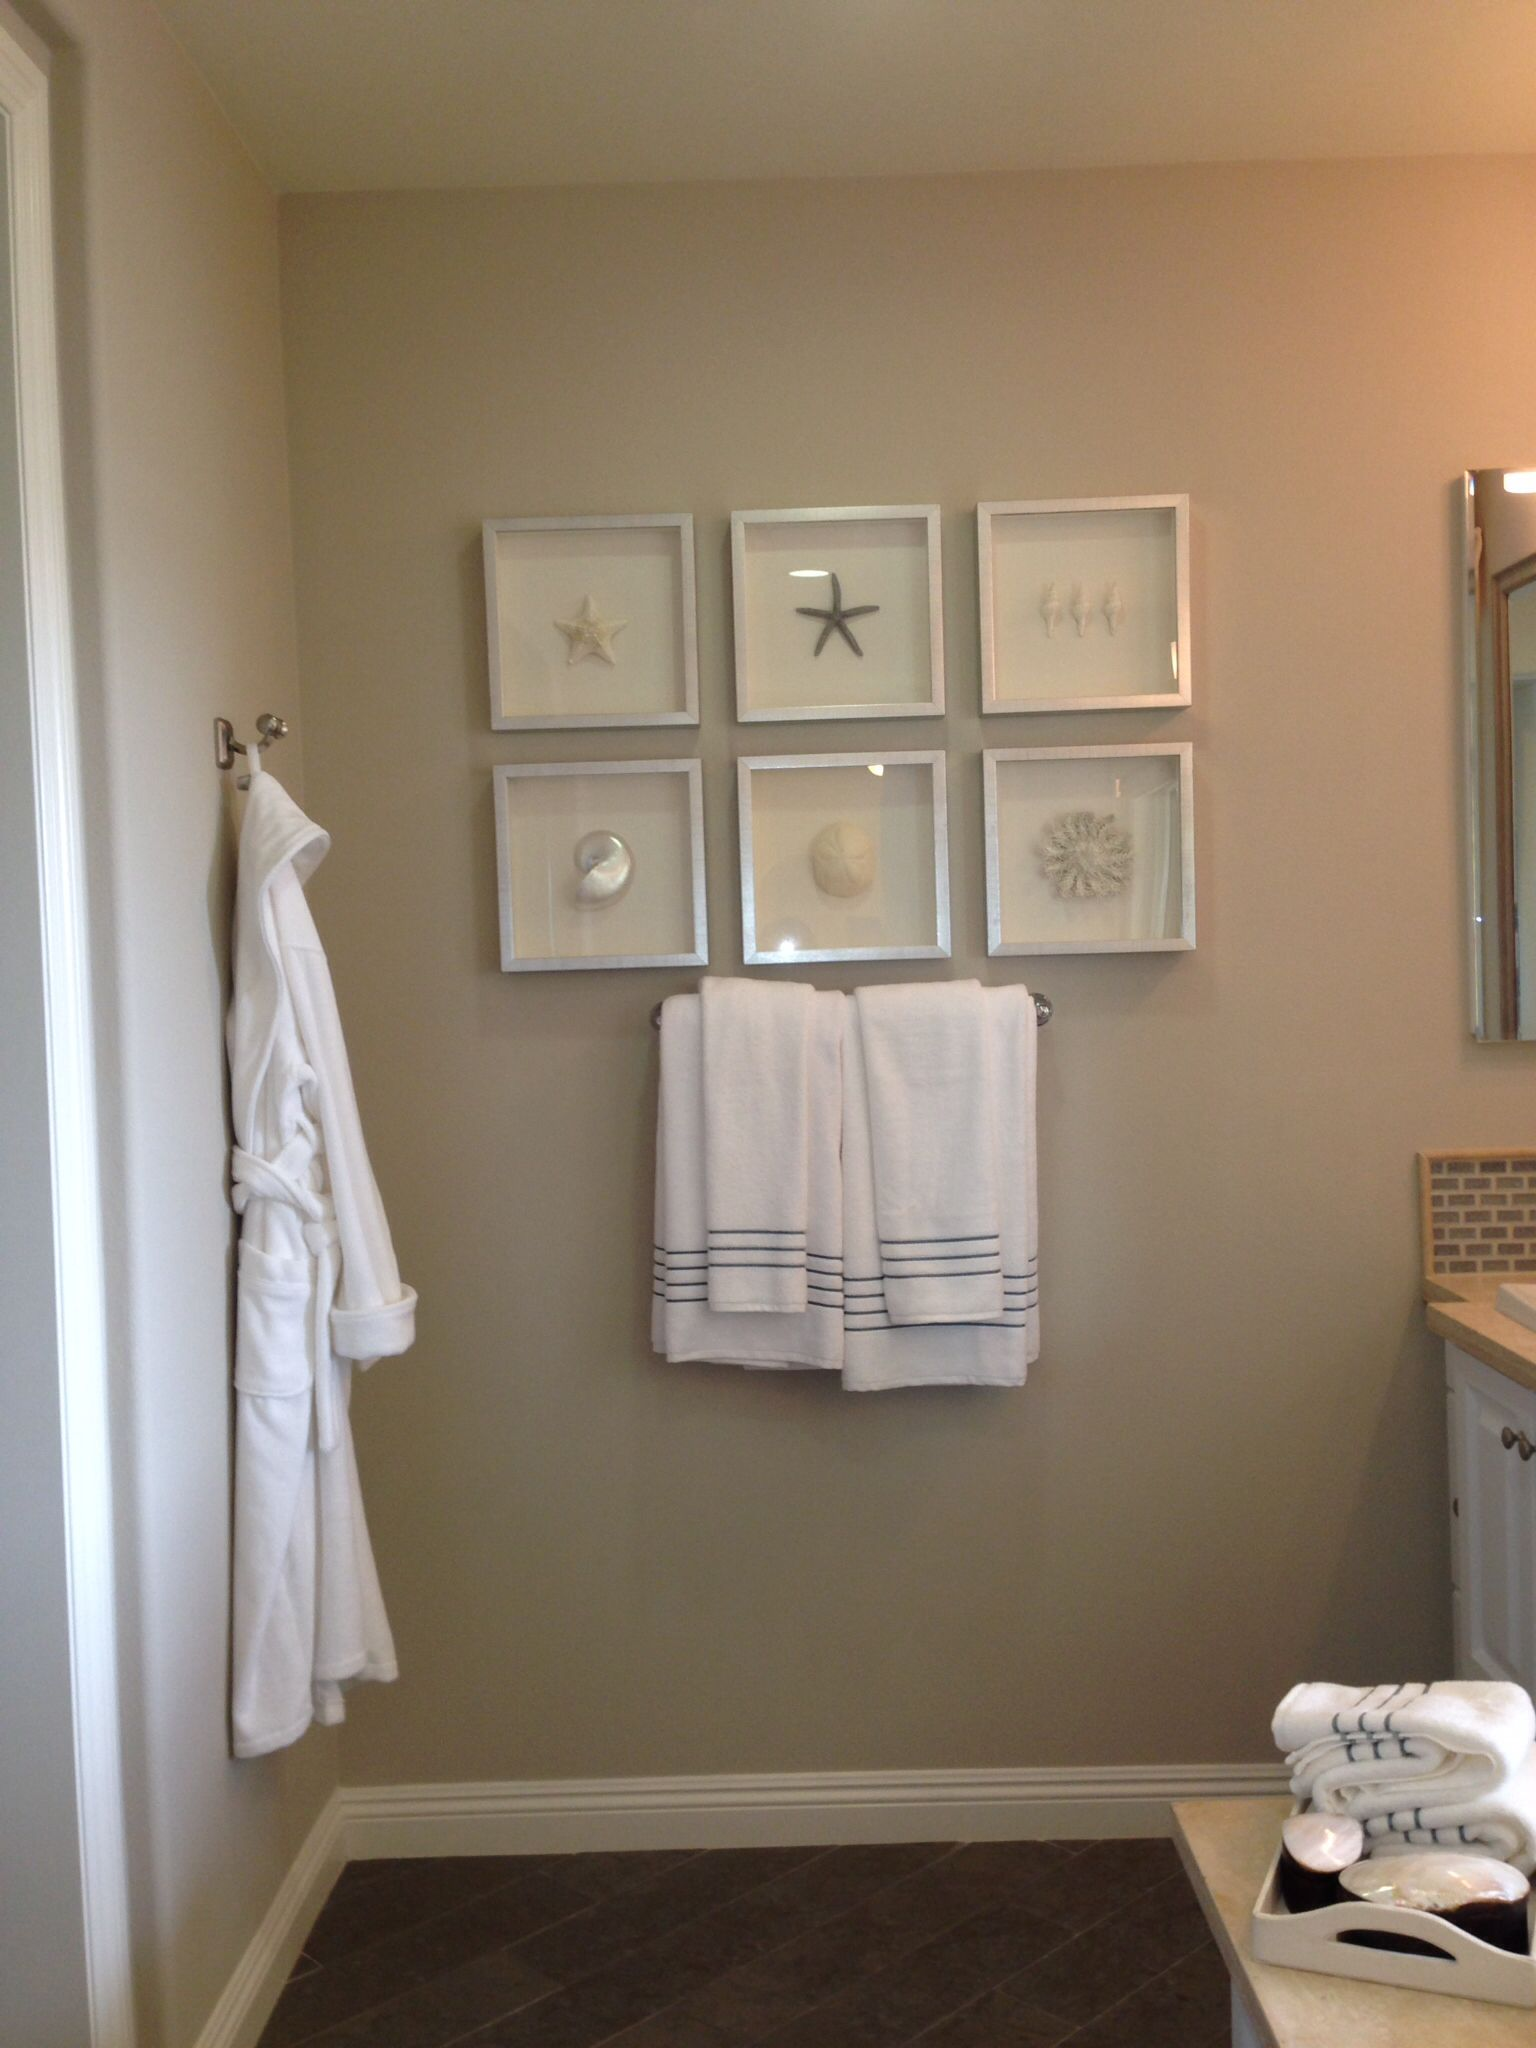 Bathroom beach decor framing ideas model home for Coastal wall decor ideas